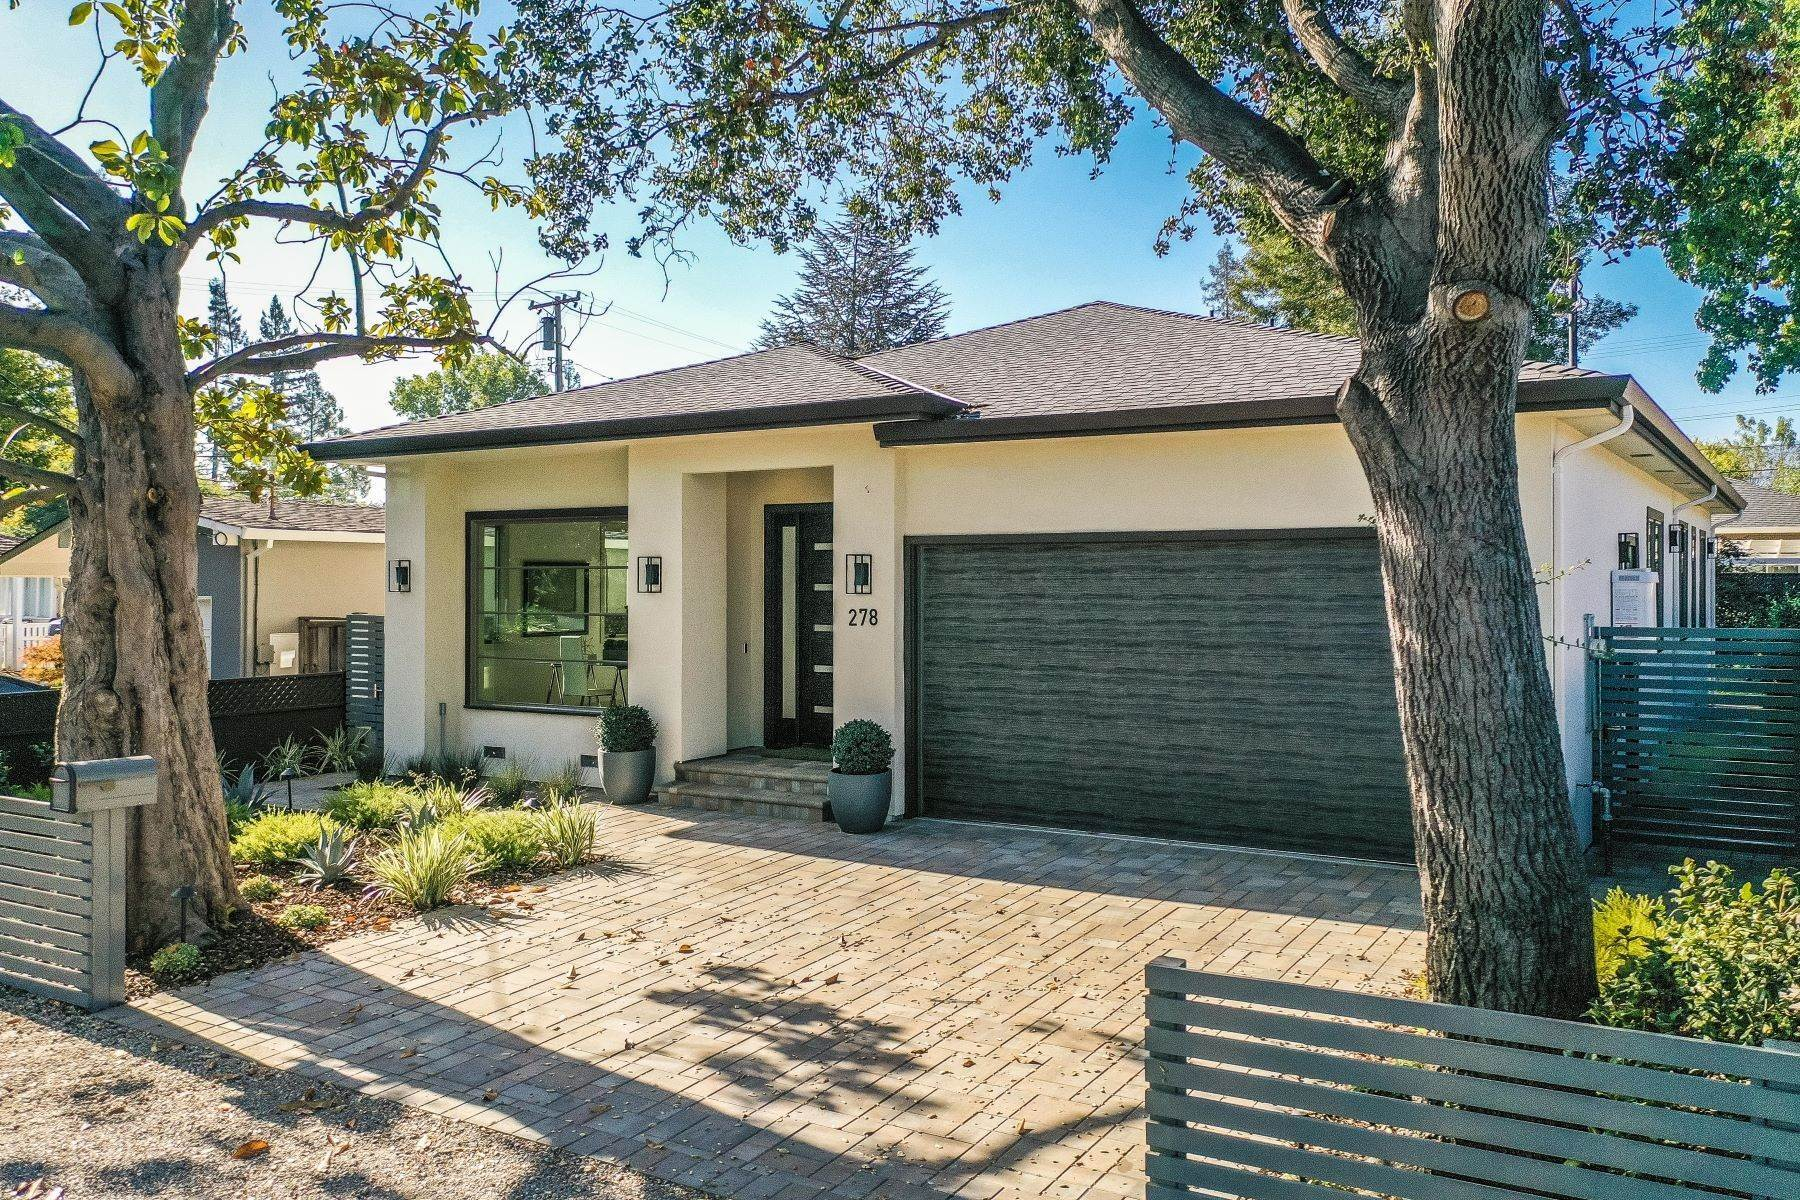 Single Family Homes für Verkauf beim Brand New, Custom-Built Home with Designer Touches and High-End Finishes 278 Beresford Avenue Redwood City, Kalifornien 94061 Vereinigte Staaten